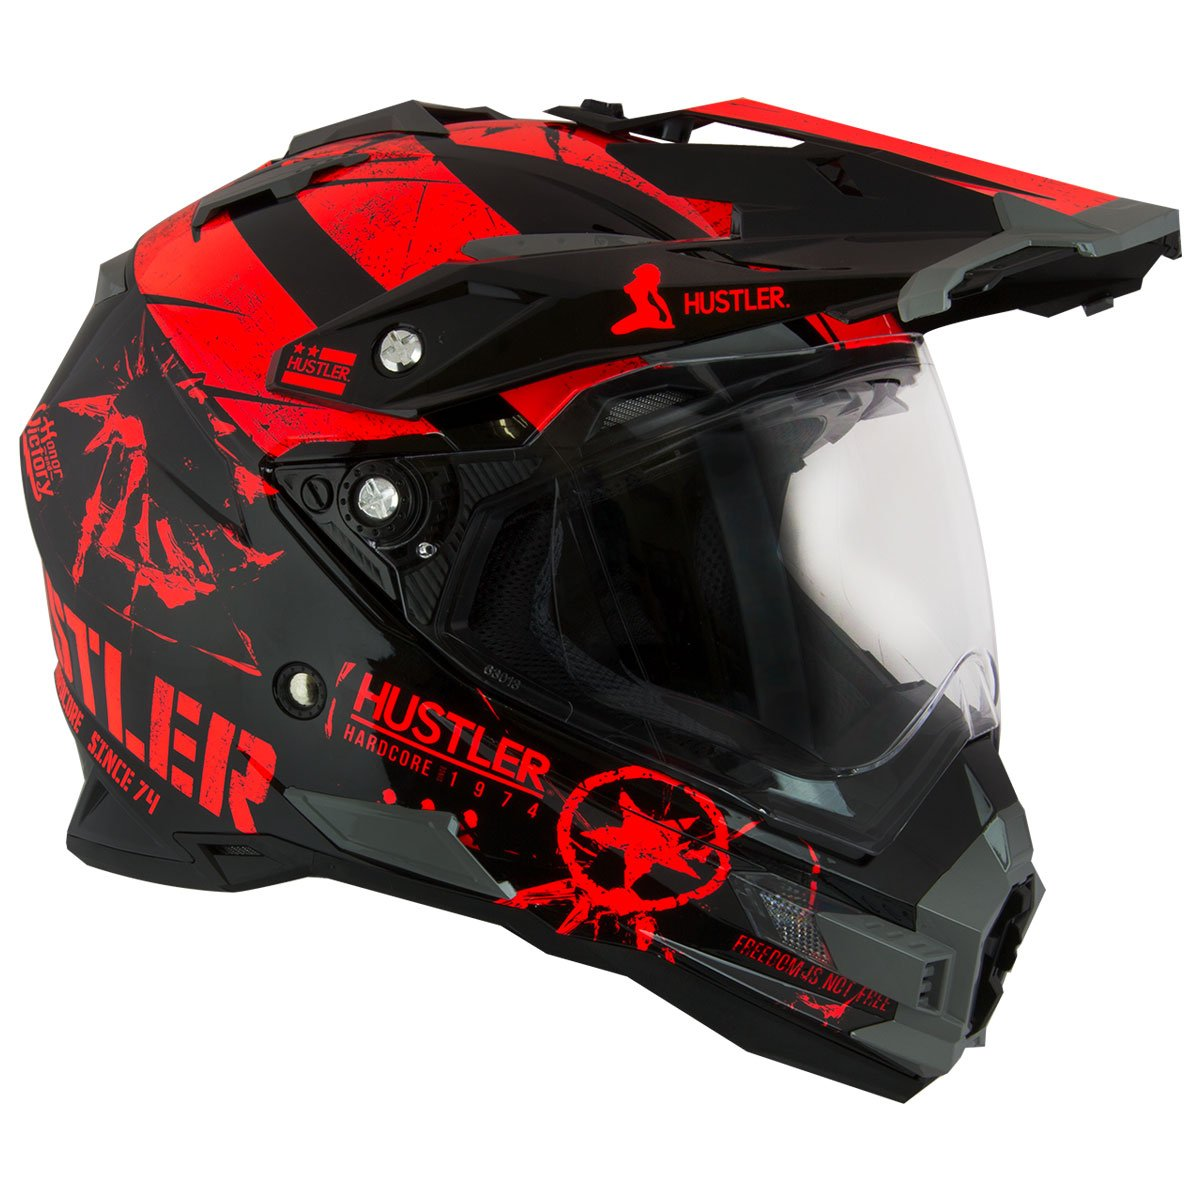 Hustler Hardcore Since 1974 Dual Sport Red And Black Gloss Motorcycle Helmet - X-Large by Hustler (Image #1)